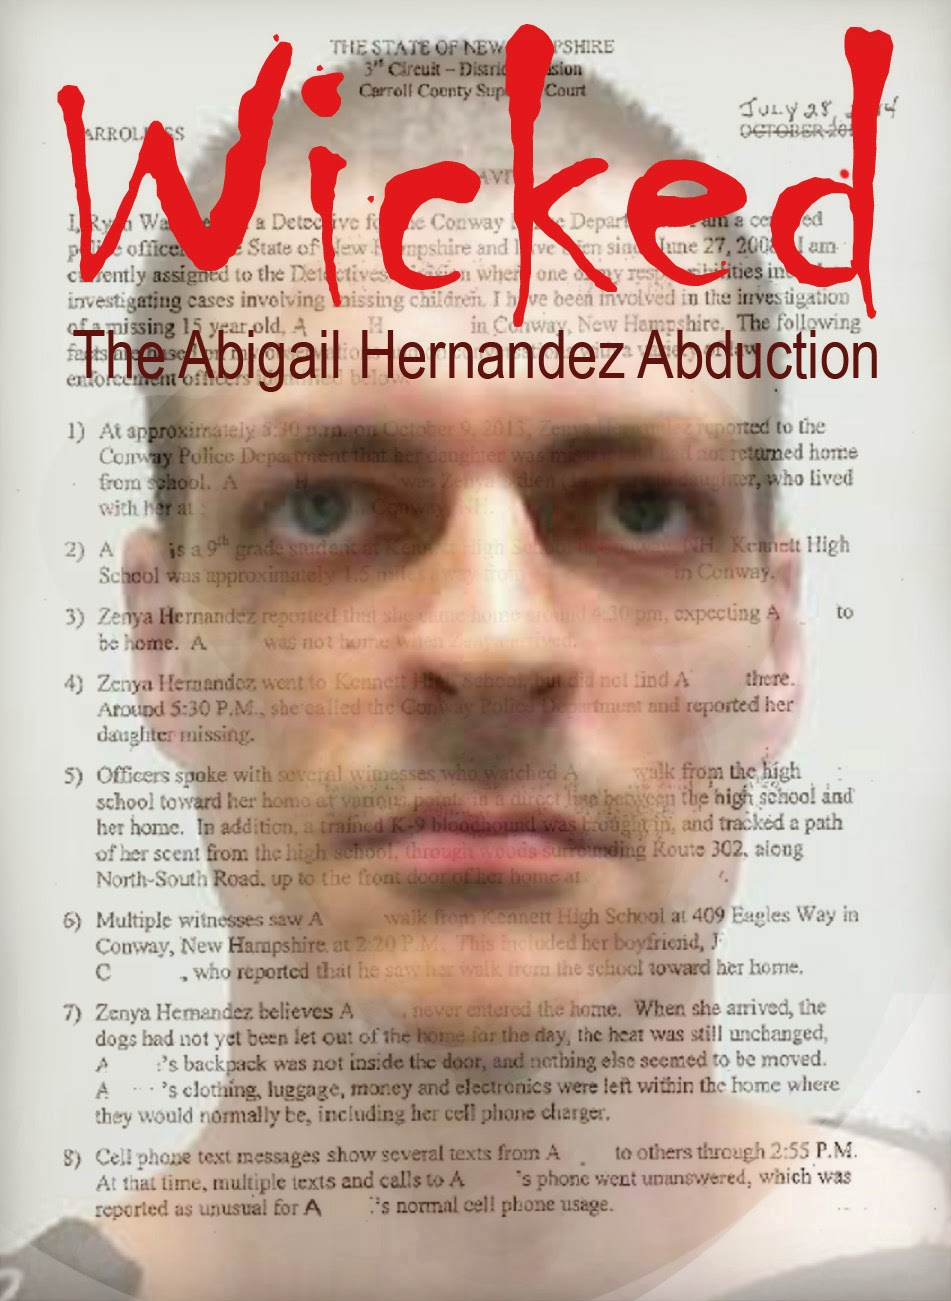 WICKED: The Abigail Hernandez Abduction